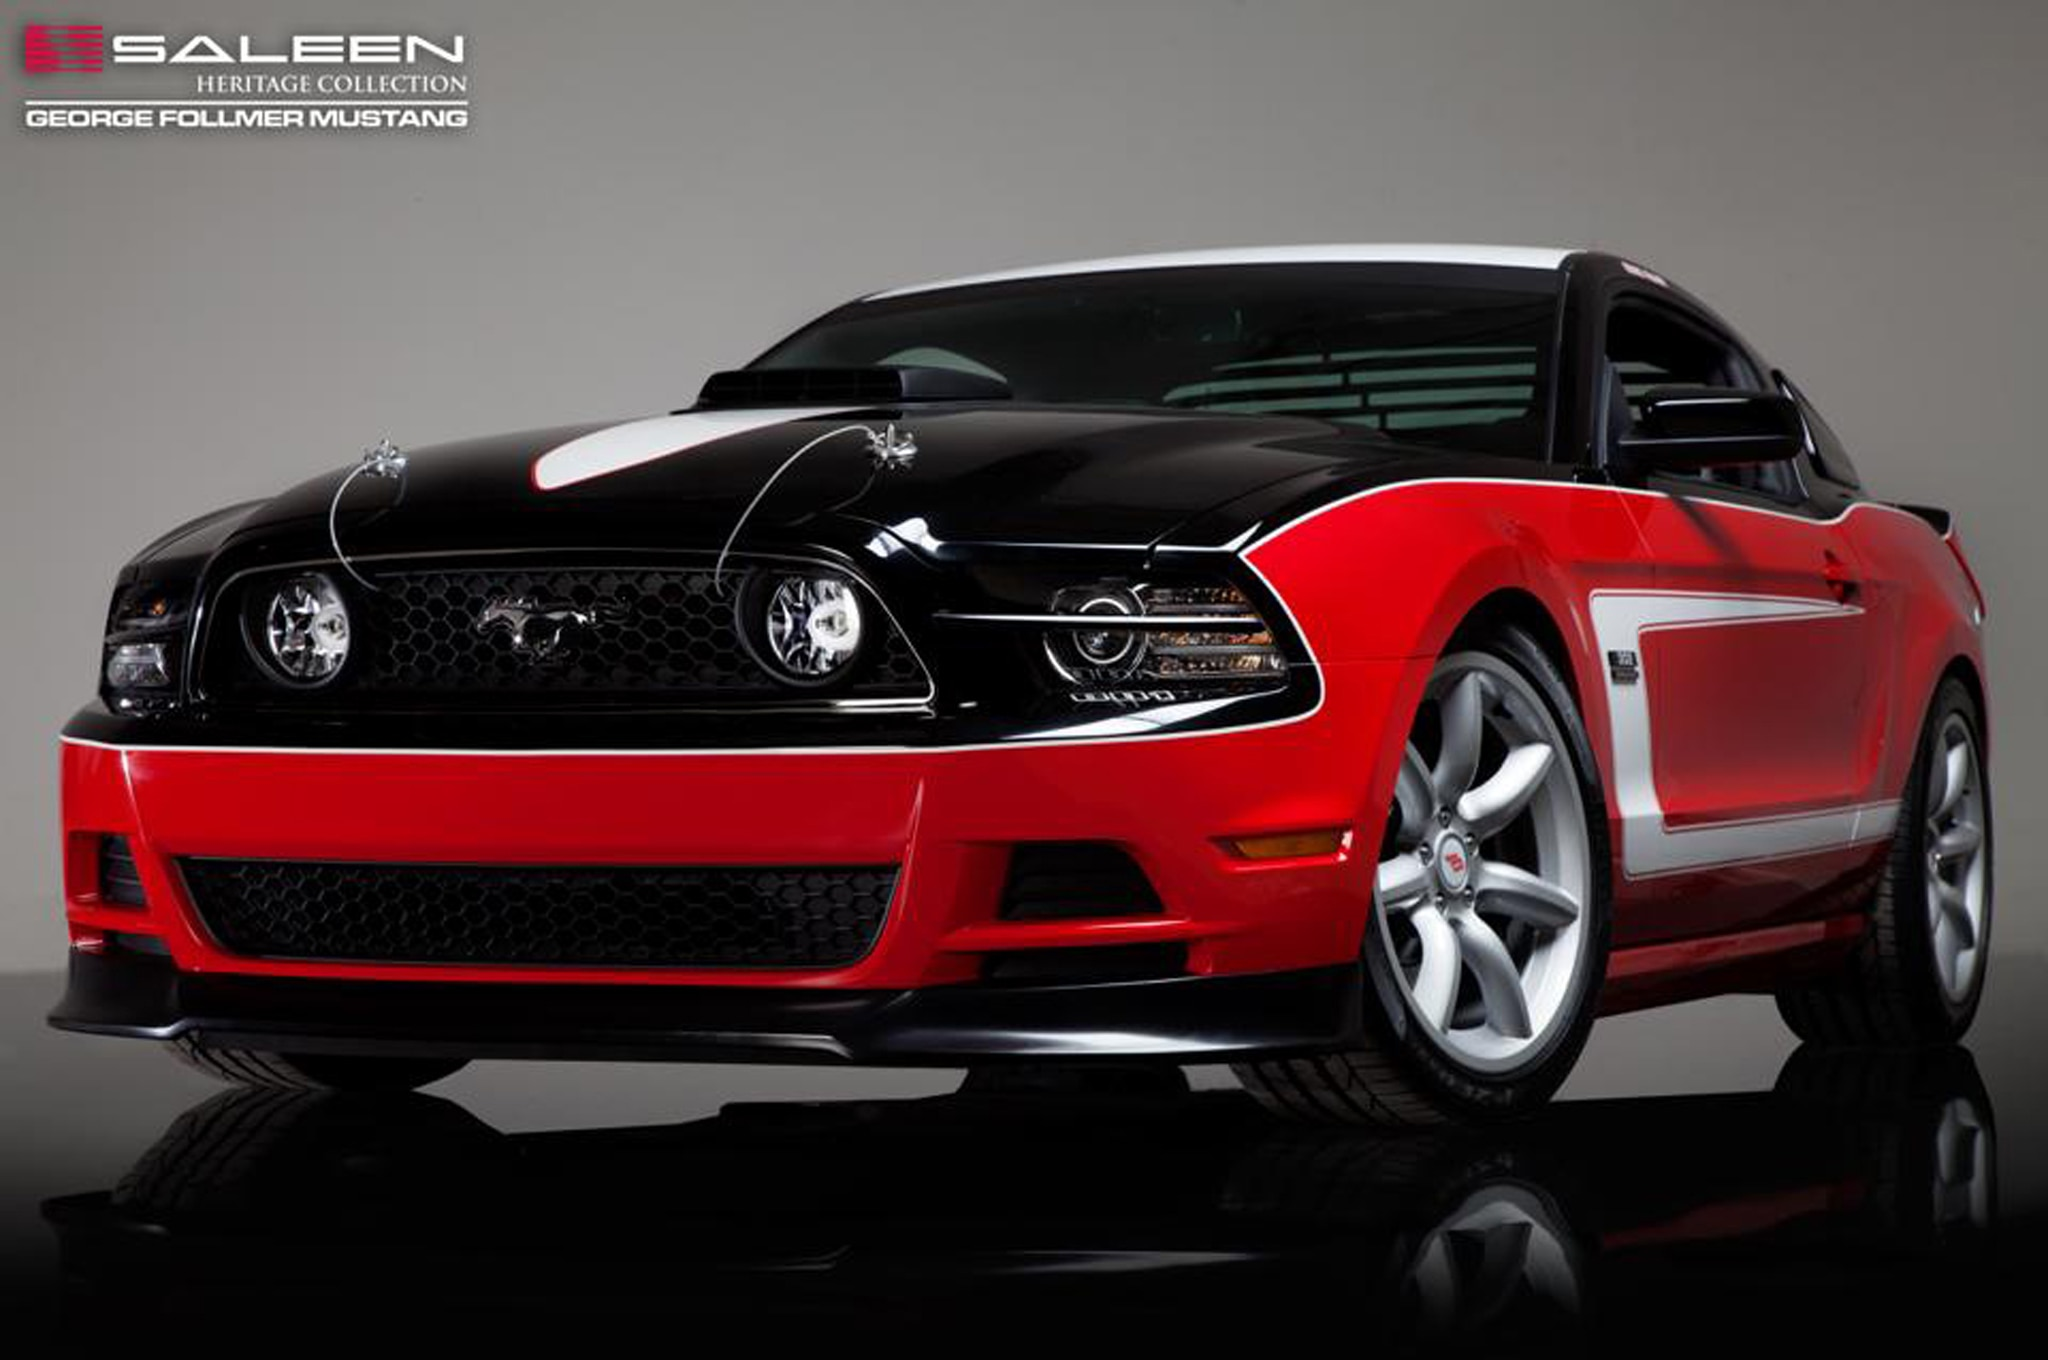 2014 Saleen George Follmer Mustang Front